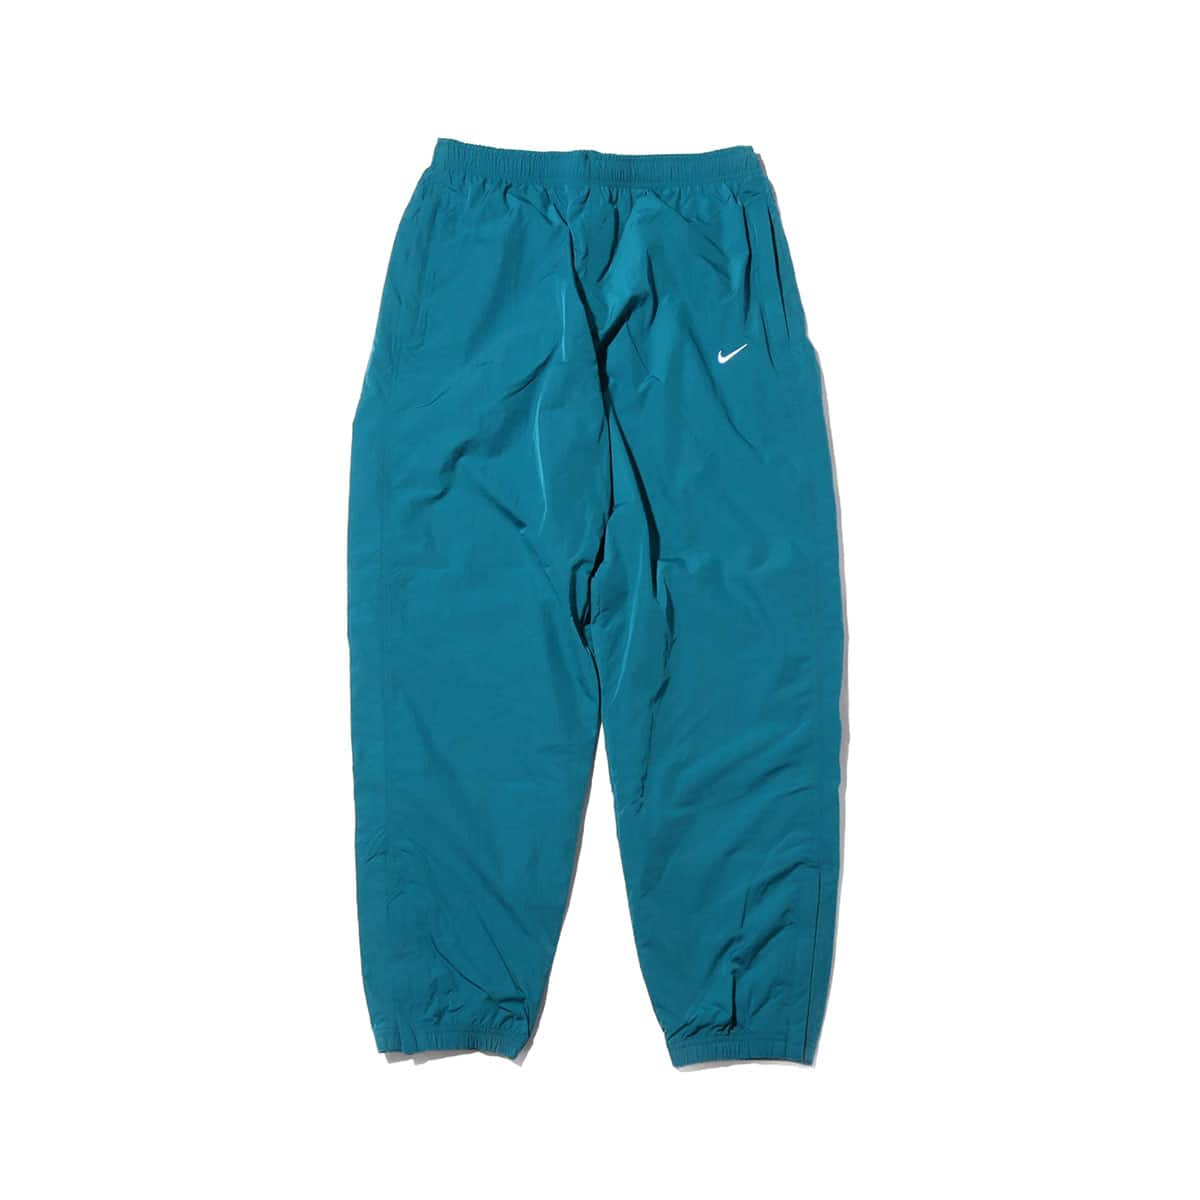 NIKE M NRG TRACK PANT GEODE TEAL 19HO-S_photo_large